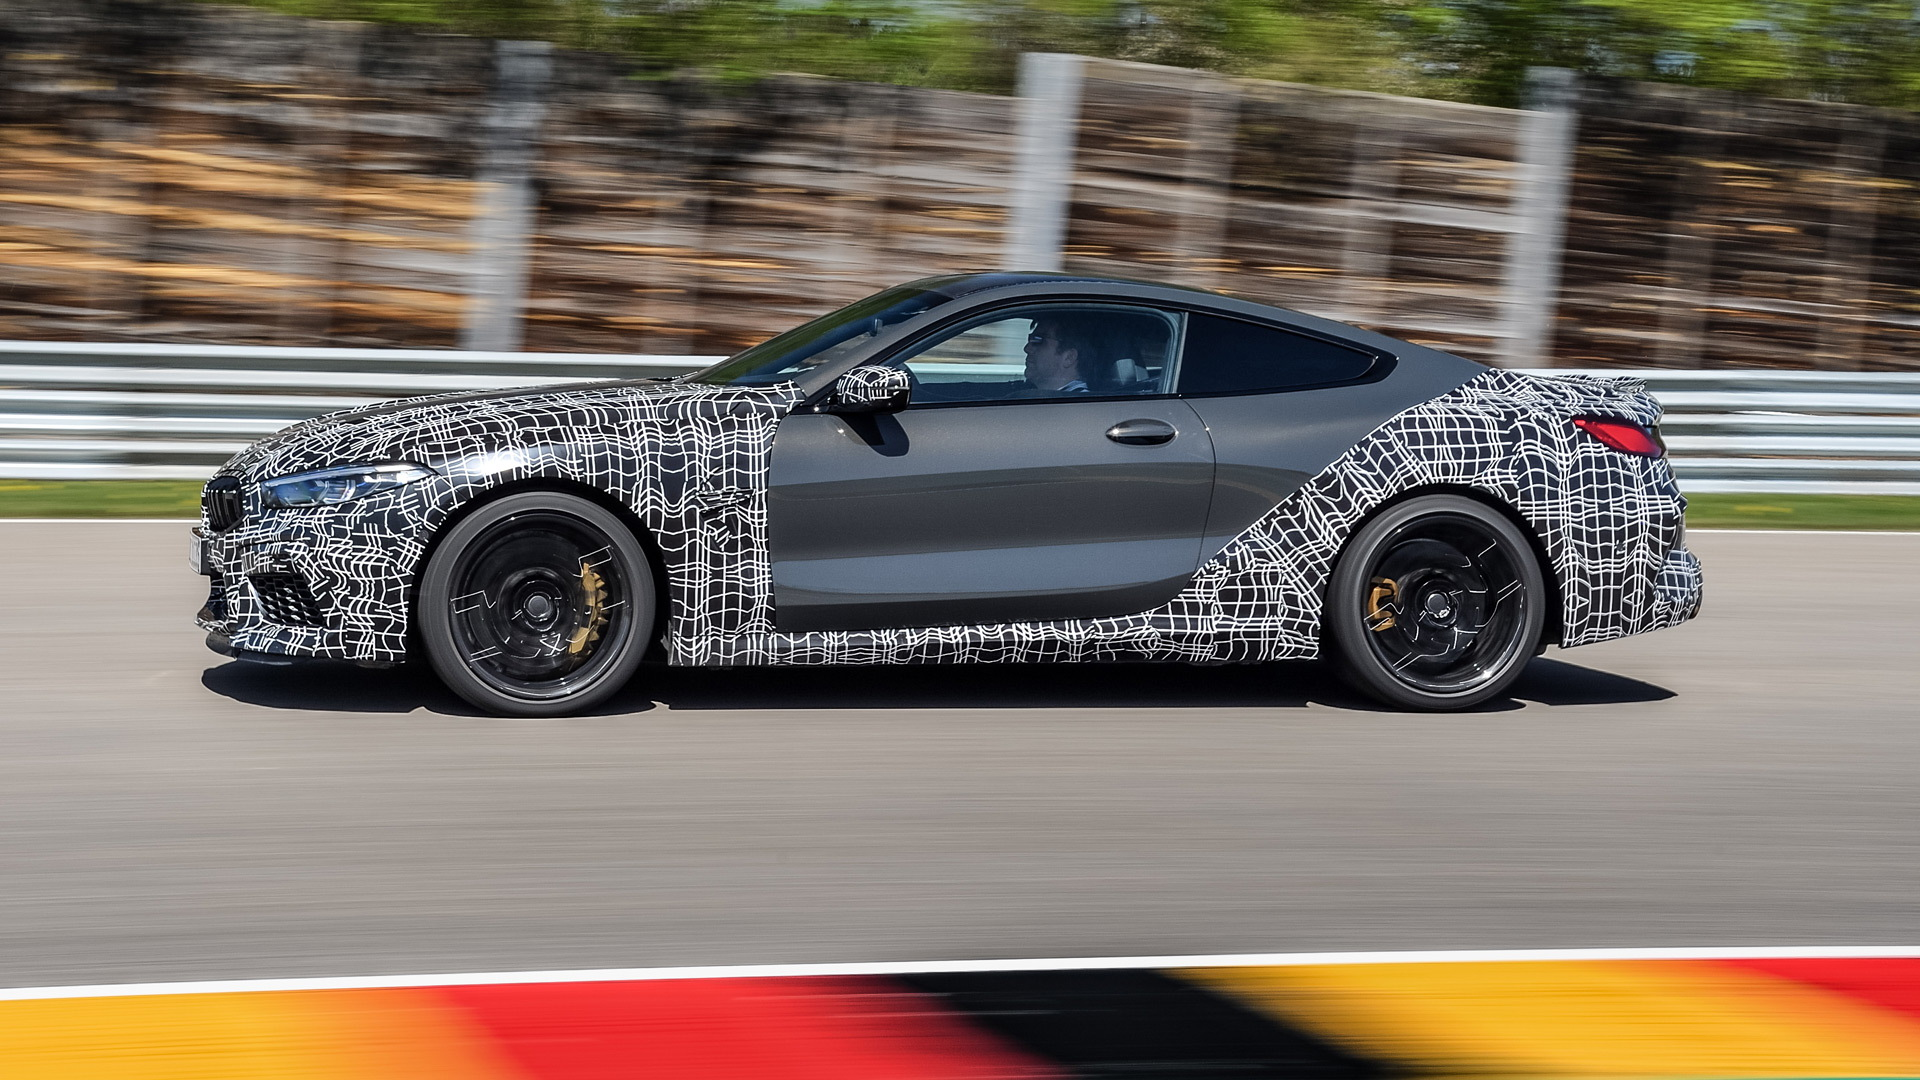 The 2020 BMW M8 Will Have Adjustable Brake-Pedal Feel